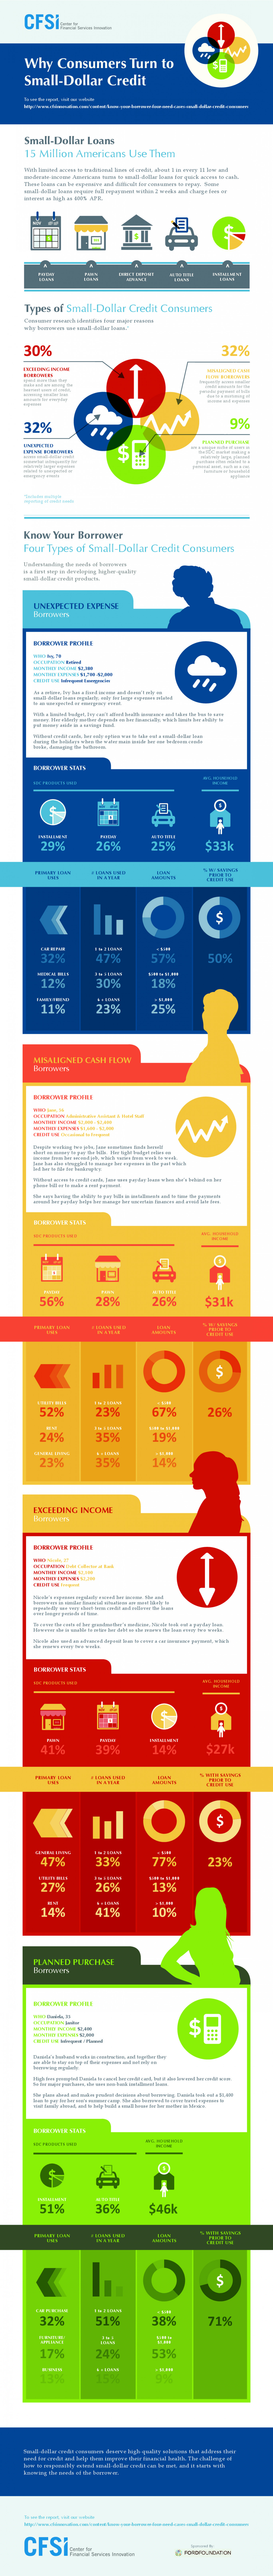 Why Consumers Turn to Small-Dollar Credit Infographic